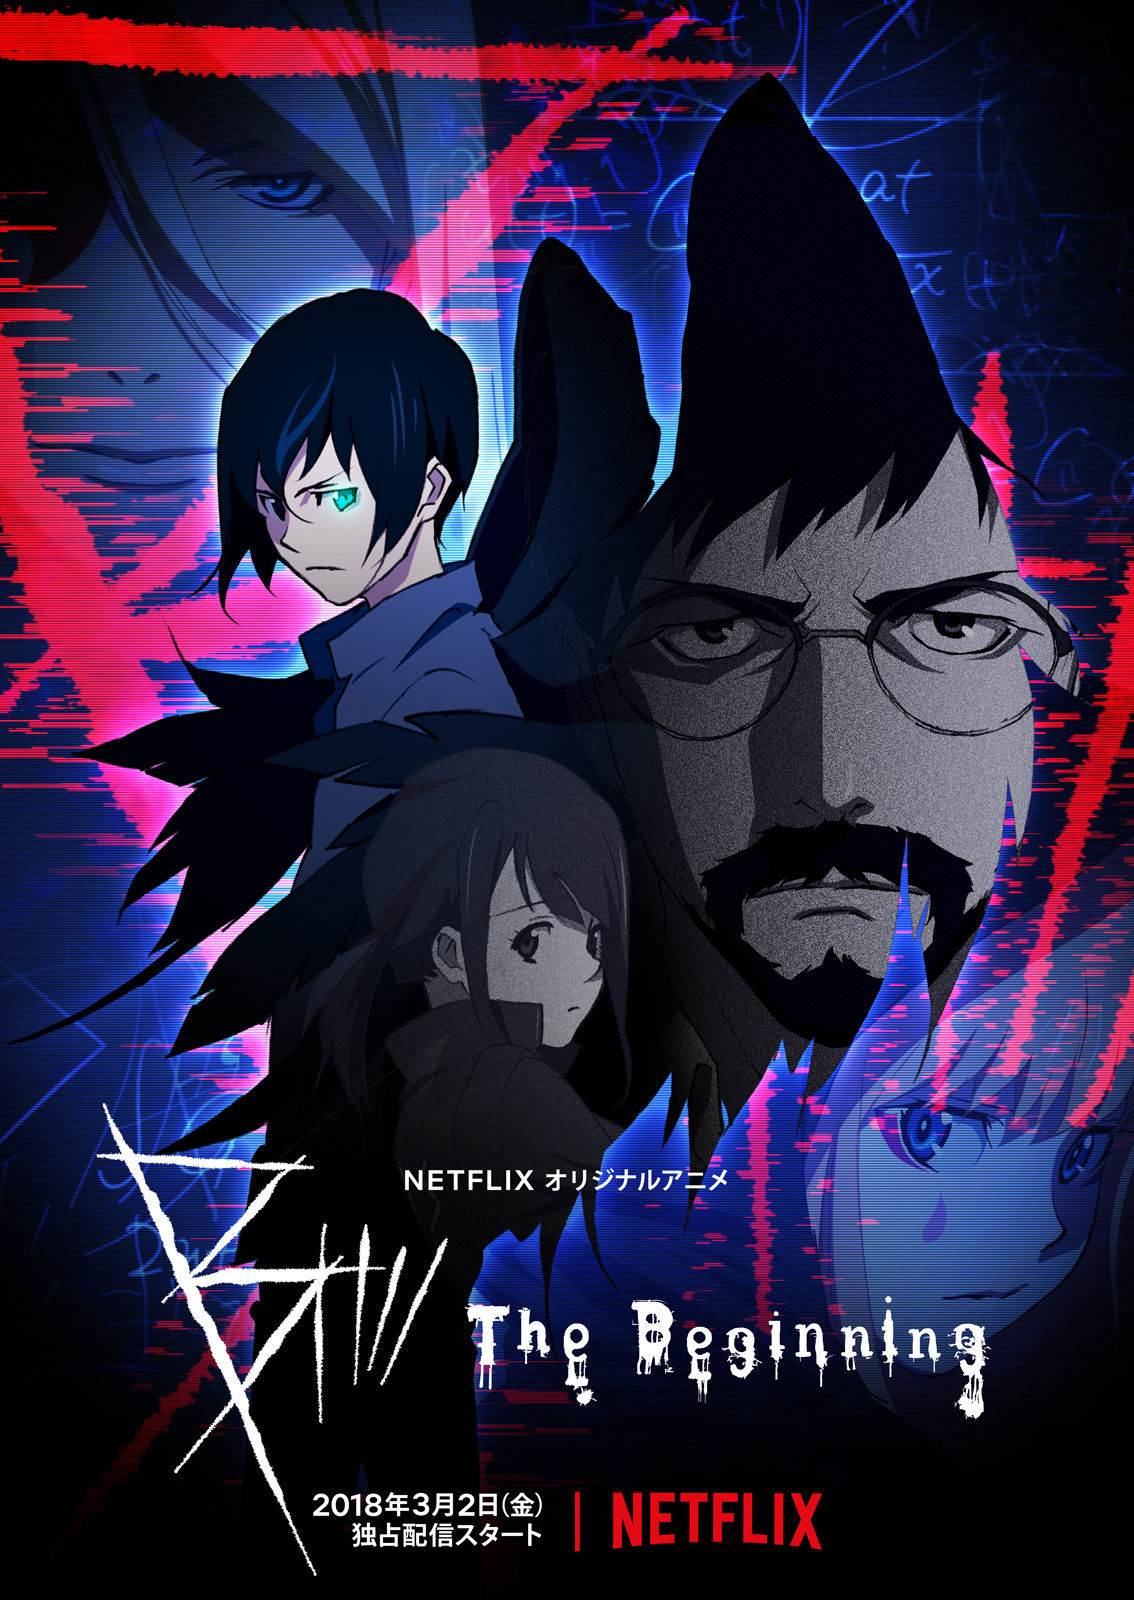 B: The Beginning ne zaman